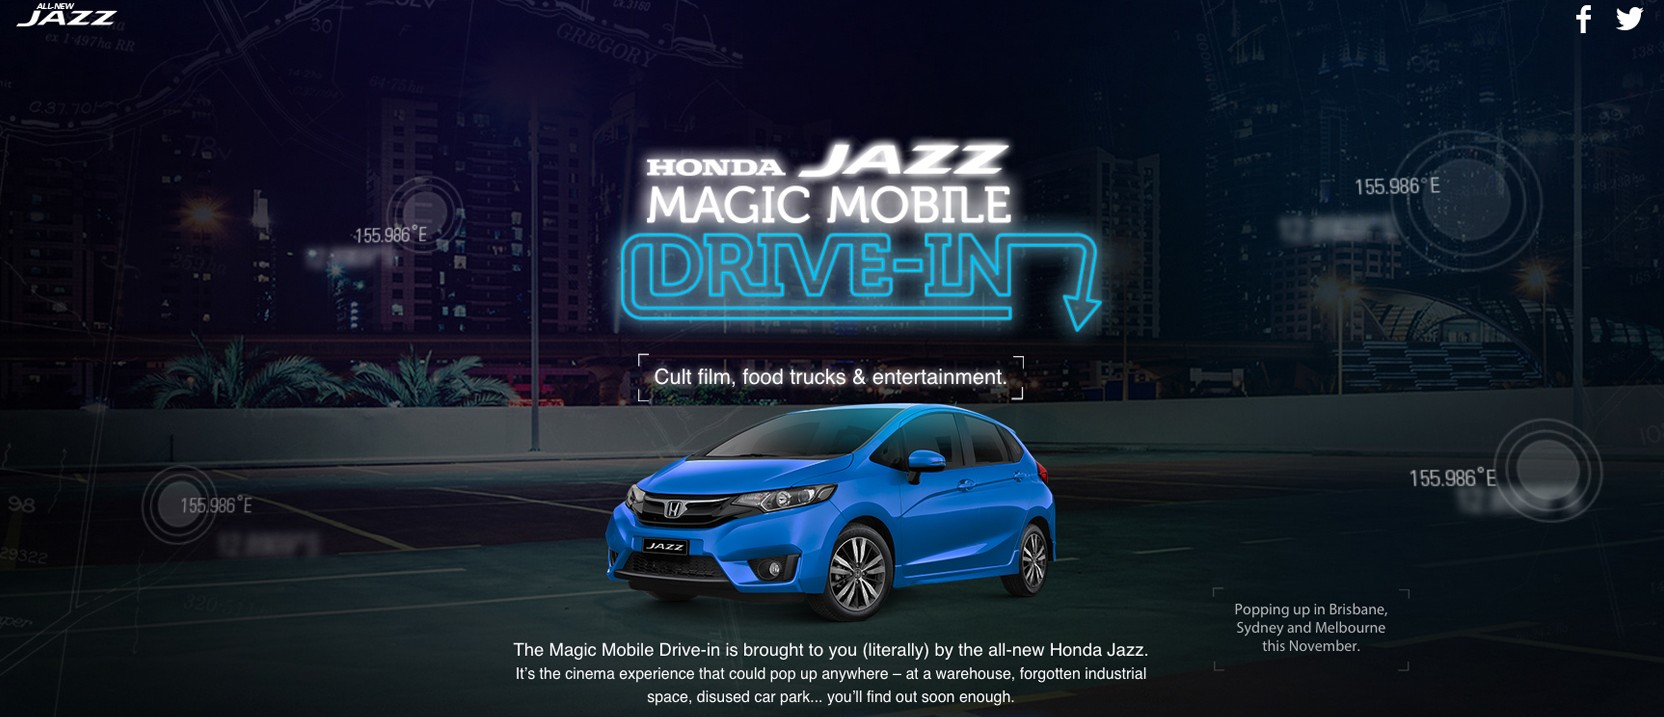 Honda-Jazz-Magic-Mobile-Drive-In-2